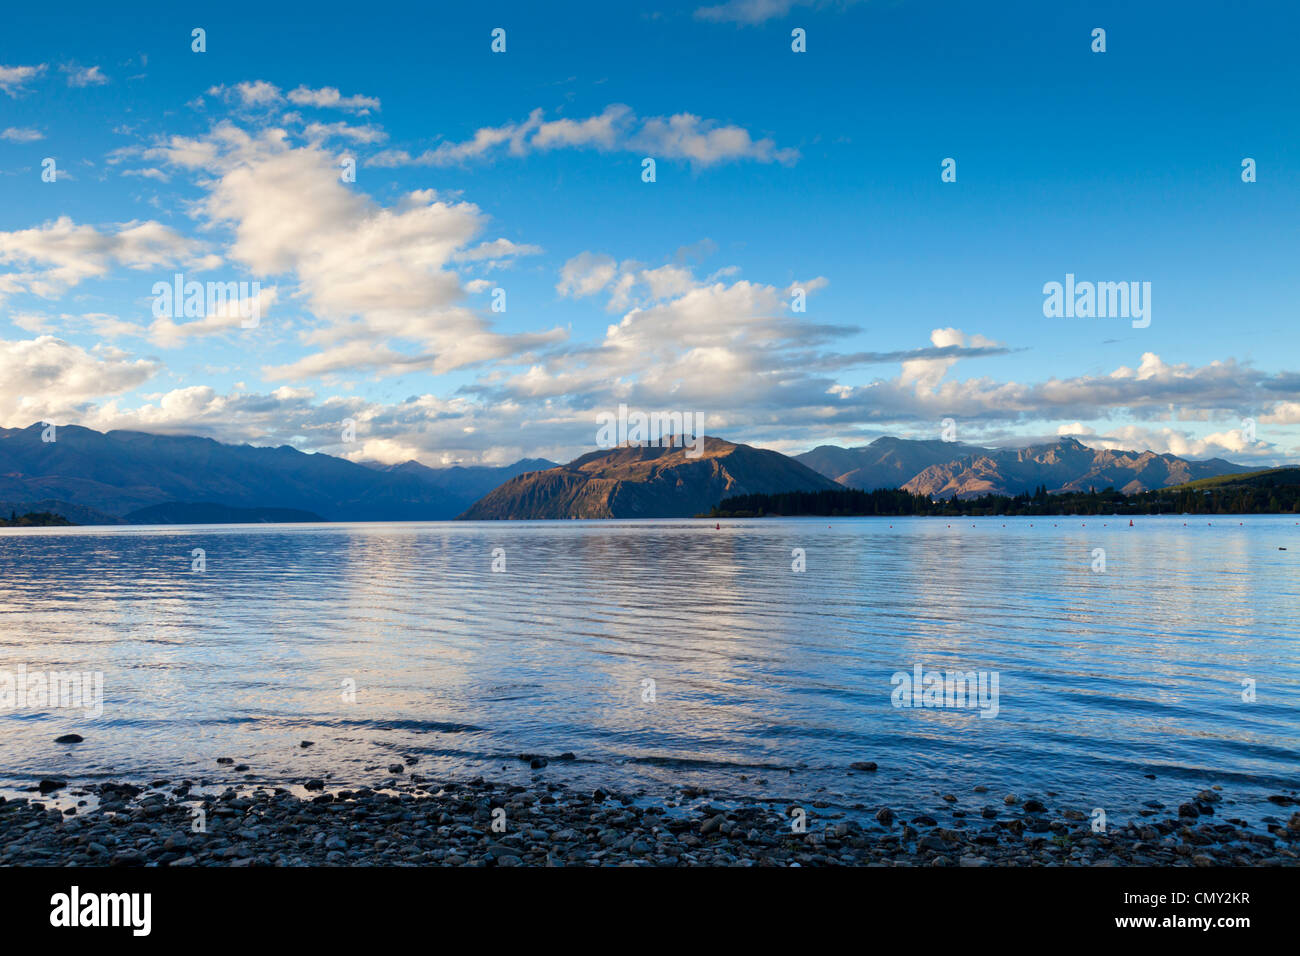 Early evening at Lake Wanaka, Otago, New Zealand. - Stock Image